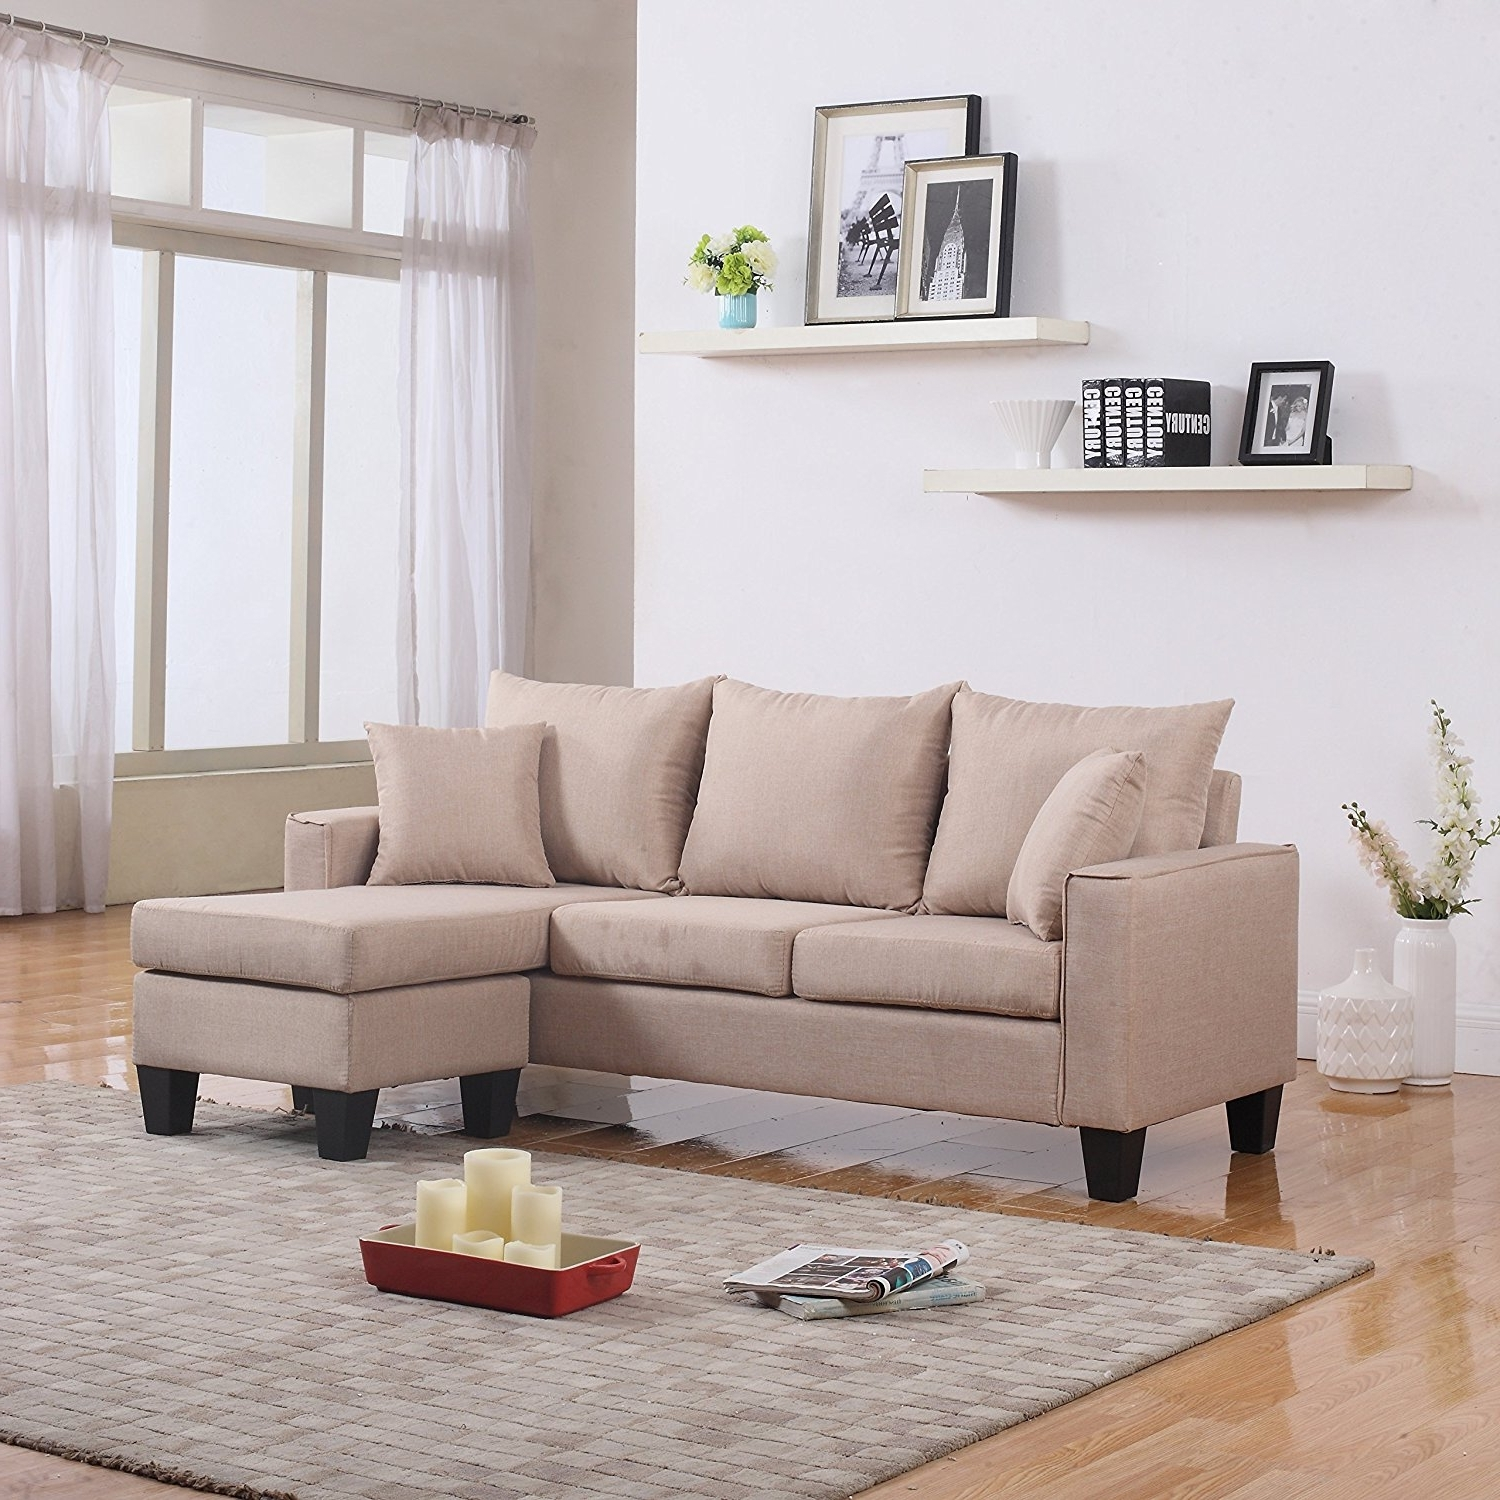 Most Up To Date Inexpensive Sectional Sofas For Small Spaces Regarding Ethan Allen Furniture Small Sectional Sofas For Small Spaces (View 15 of 15)